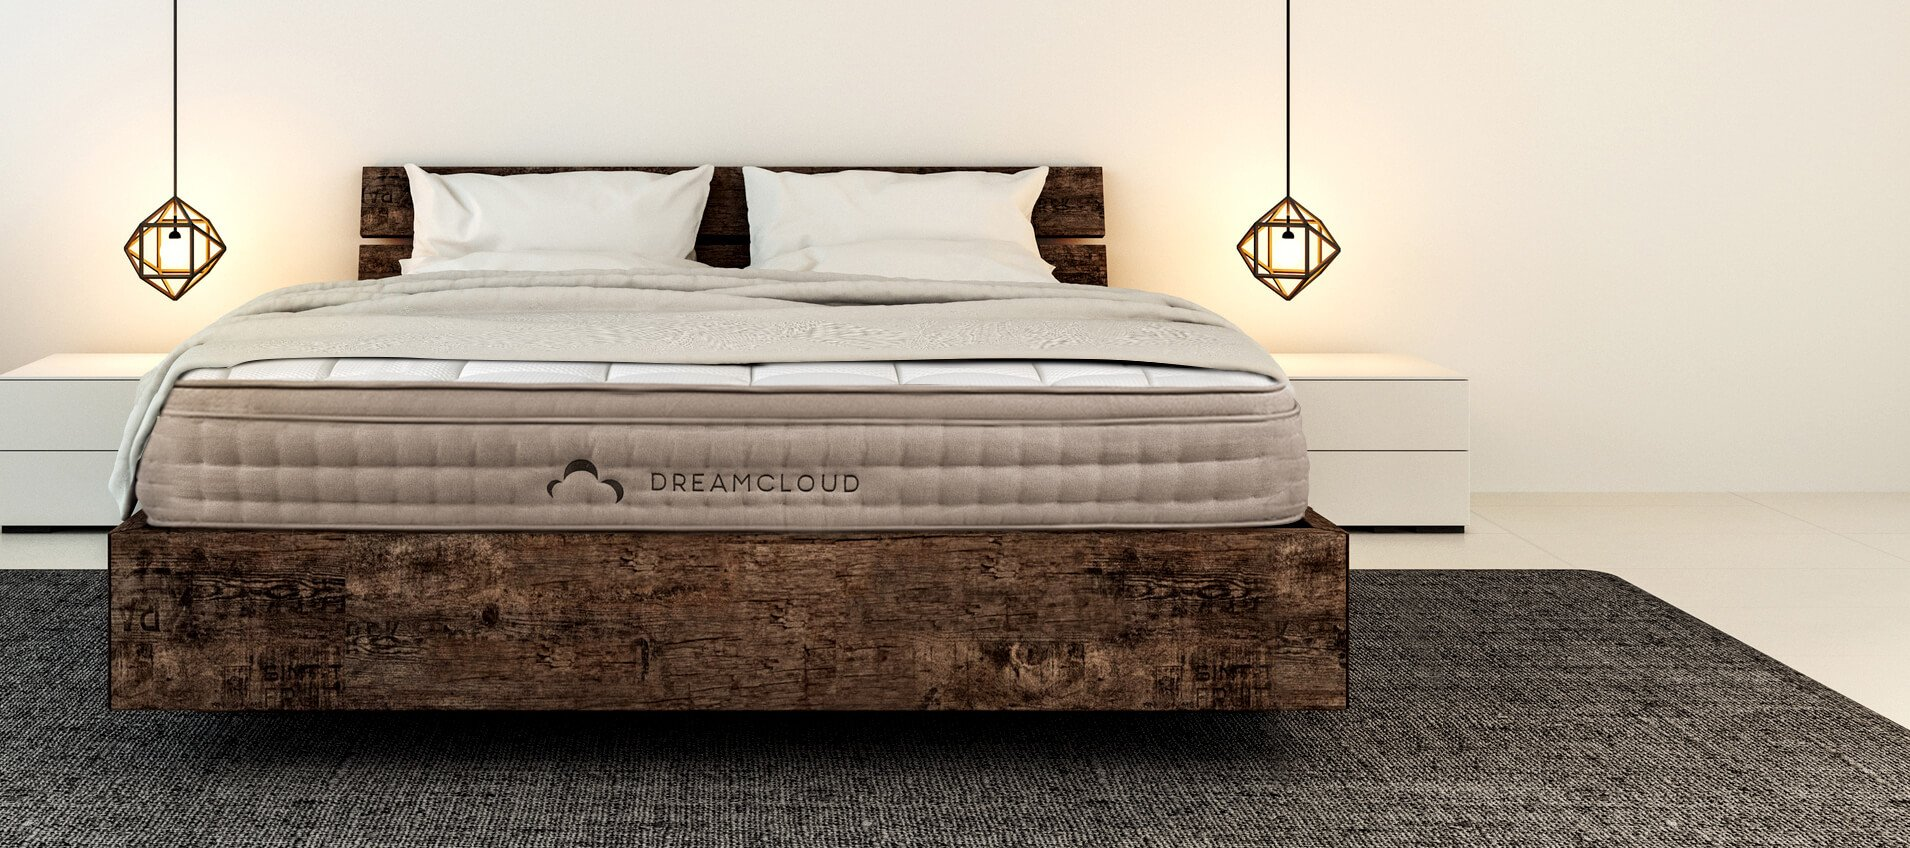 Best hybrid mattress for side sleepers — the DreamCloud in a bedroom setting.